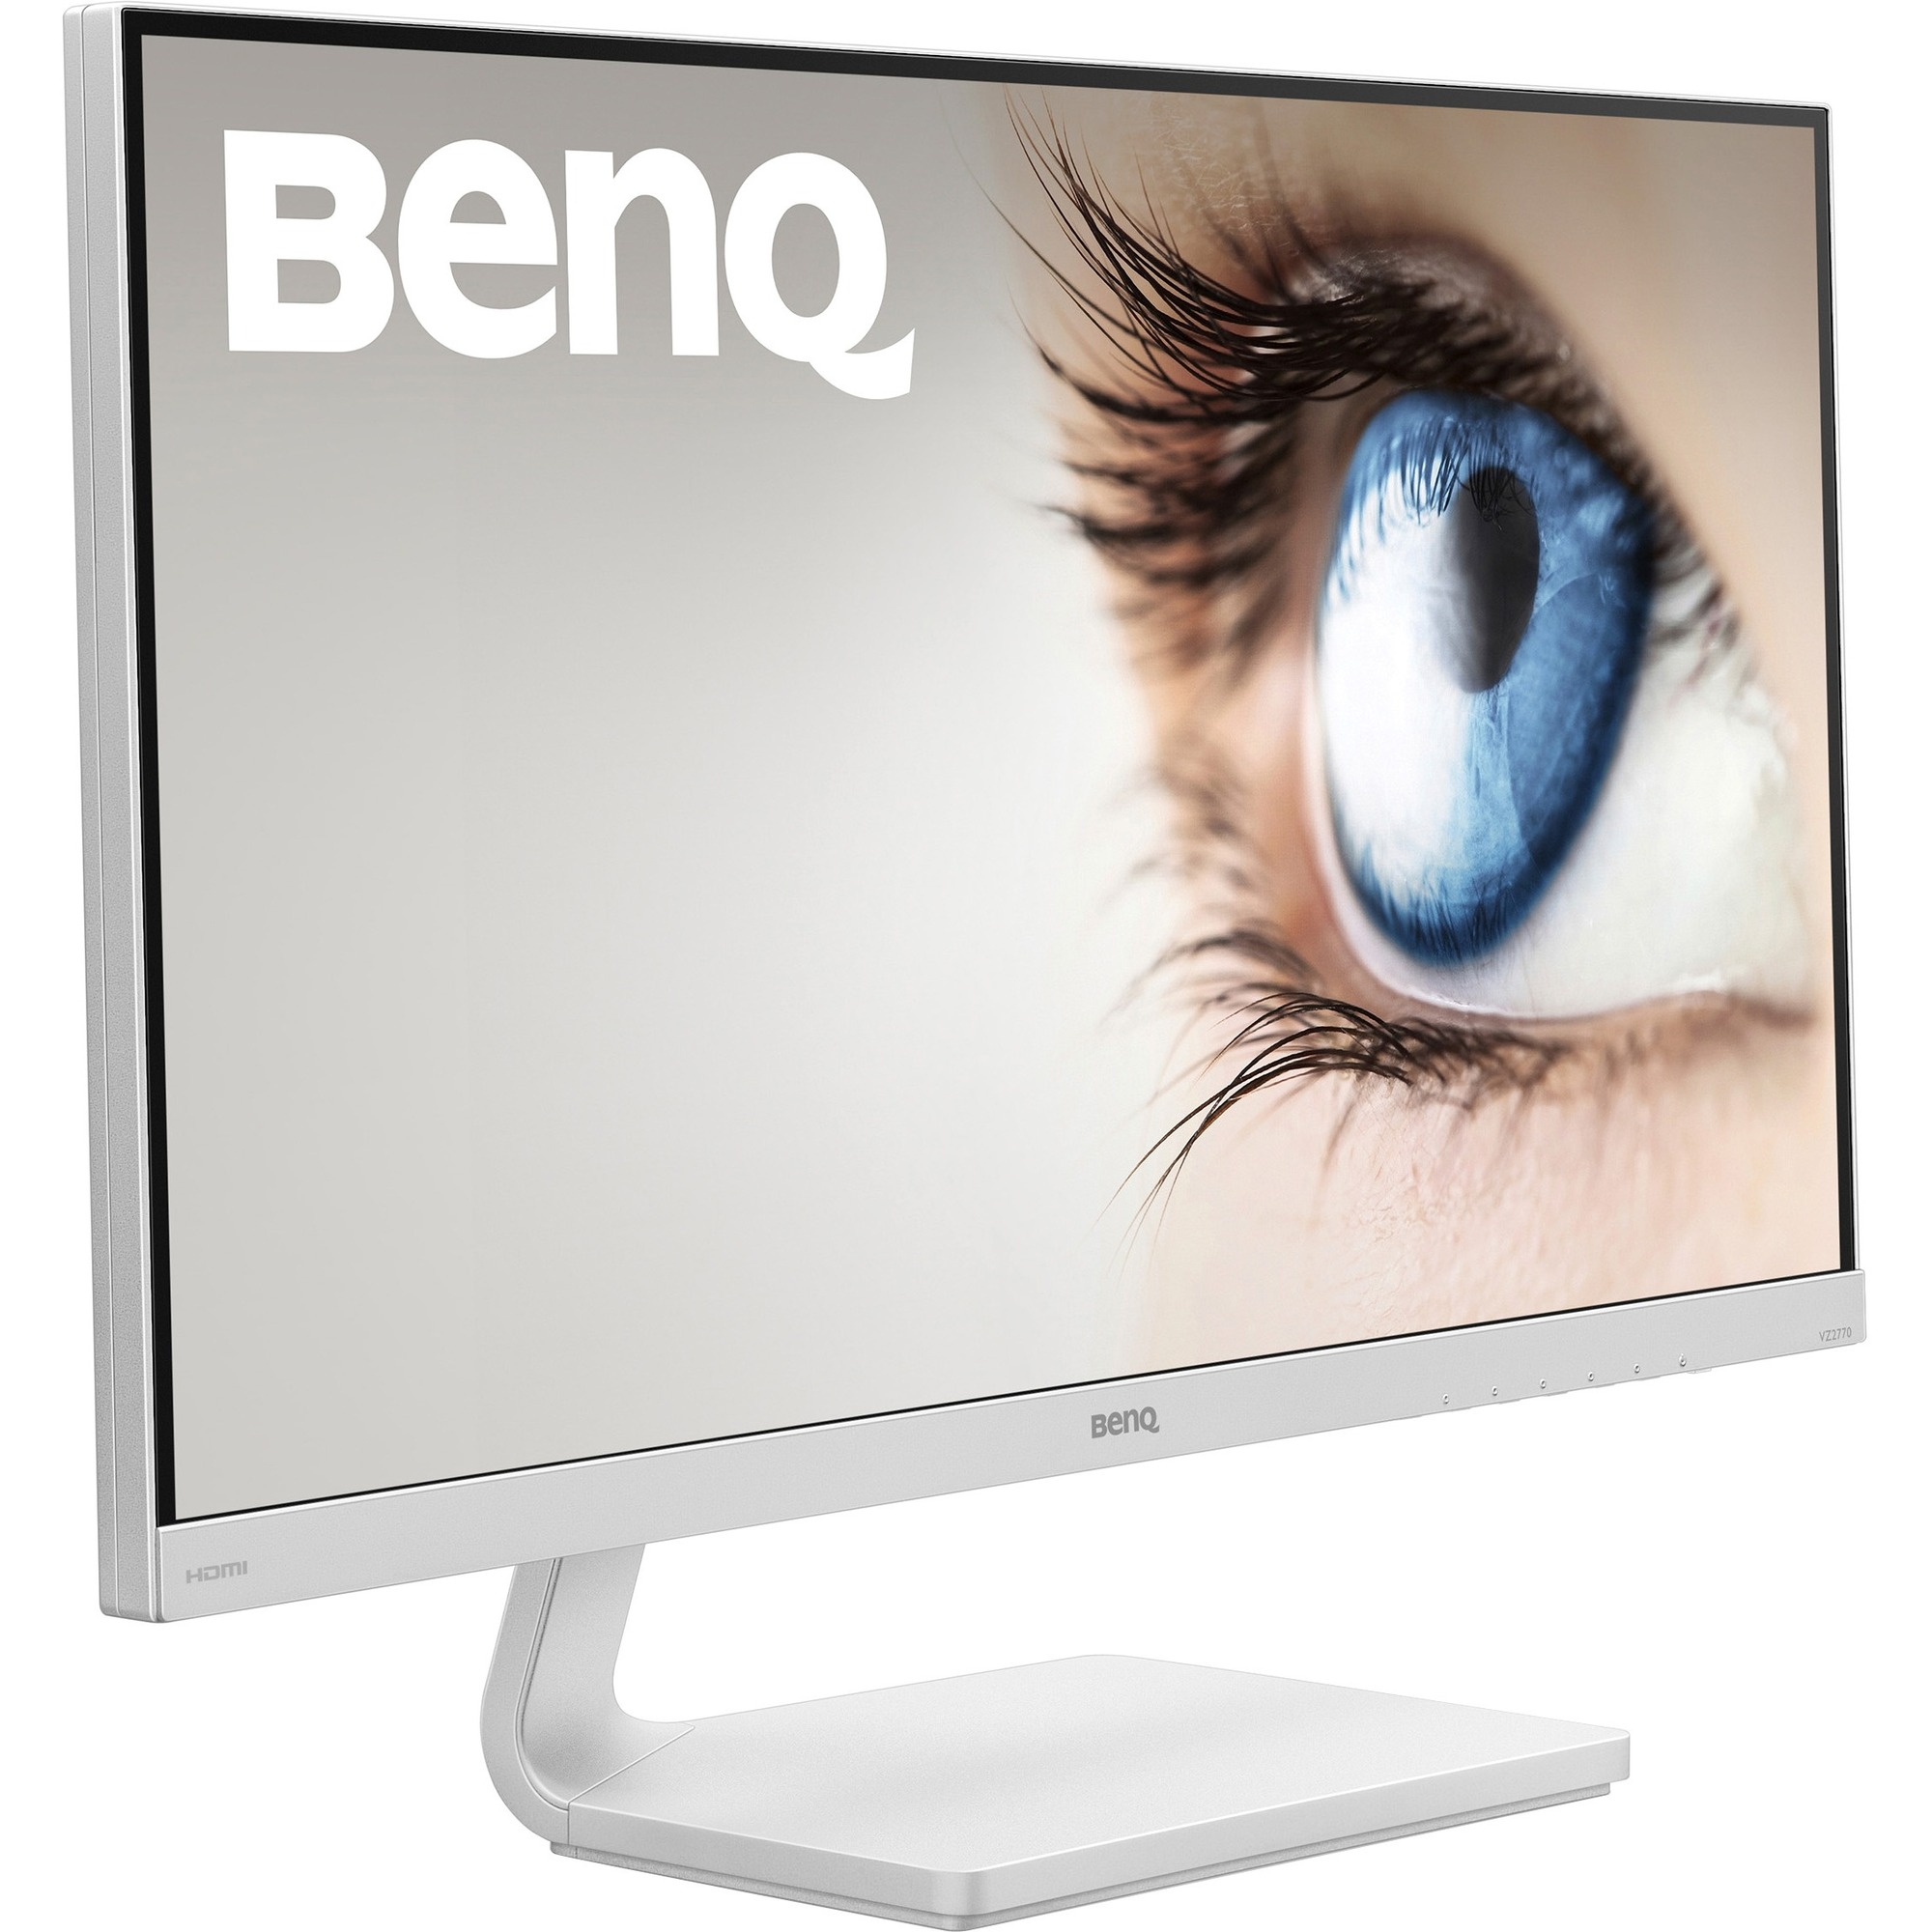 BenQ VZ2770H  27inch LED Monitor